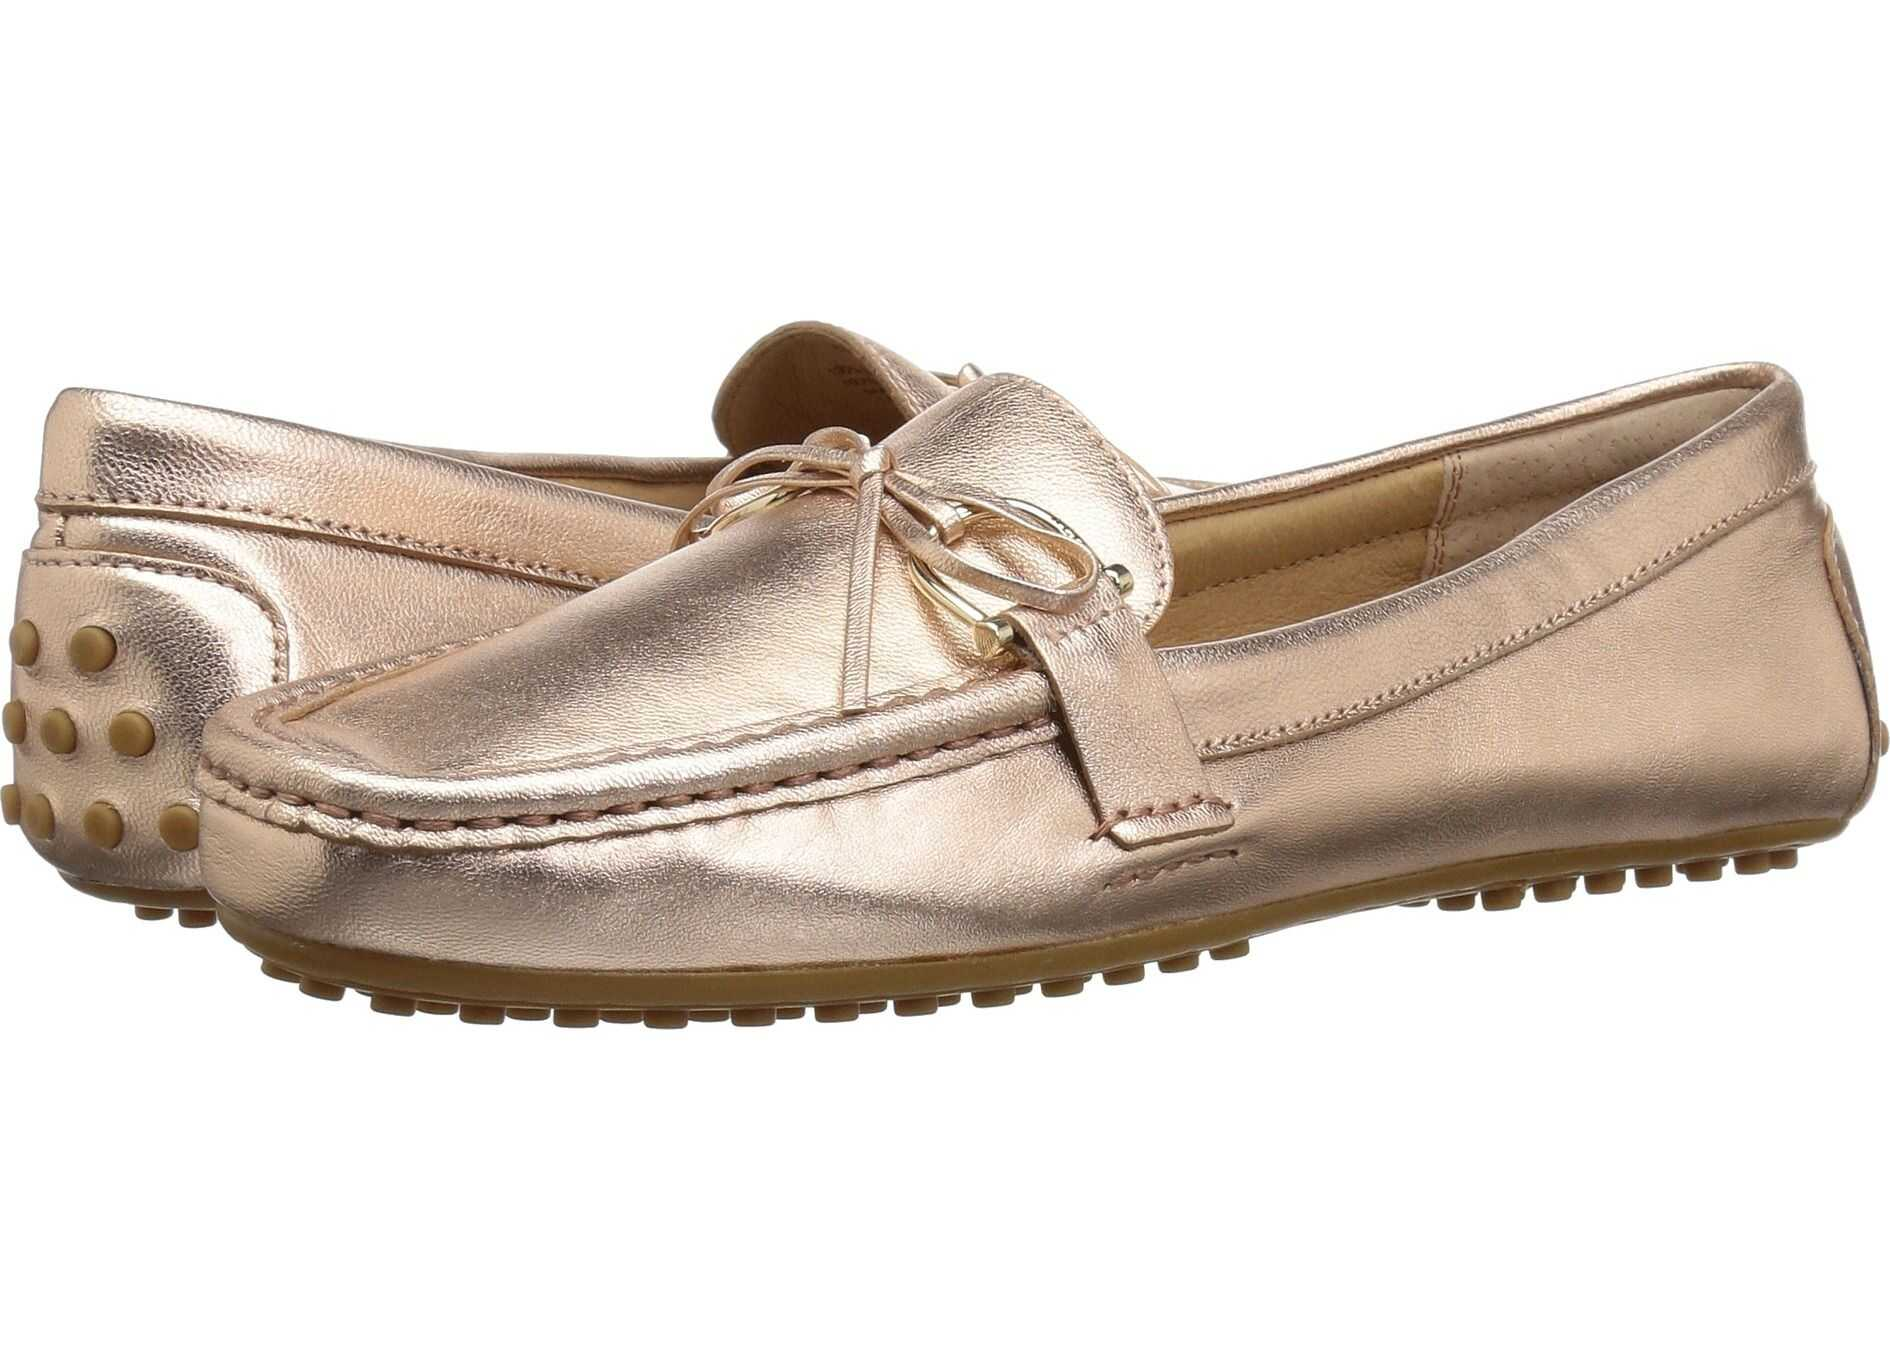 Ralph Lauren Briley Moccasin Loafer Rose Gold Metallic Leather